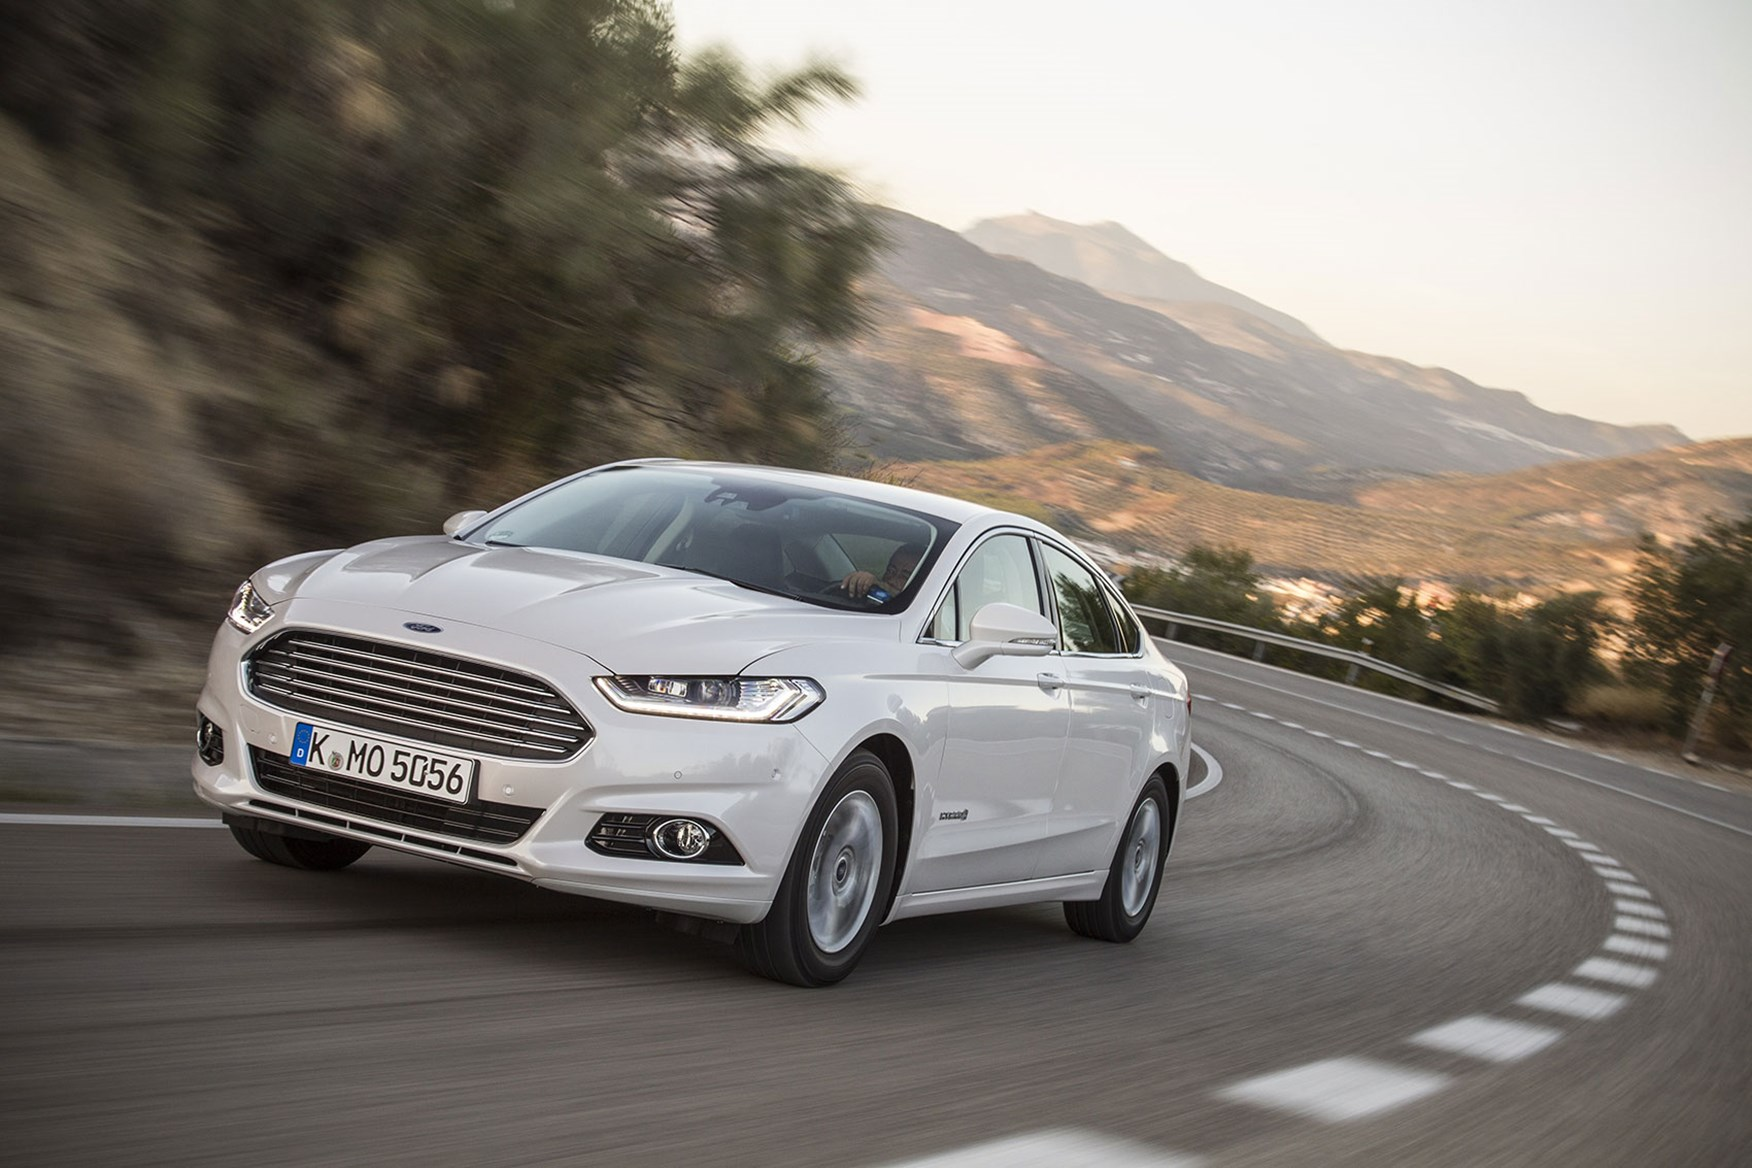 Ford Mondeo Titanium 2.0 TiVCT Hybrid (2017) review & Car reviews | Independent road tests by CAR Magazine markmcfarlin.com